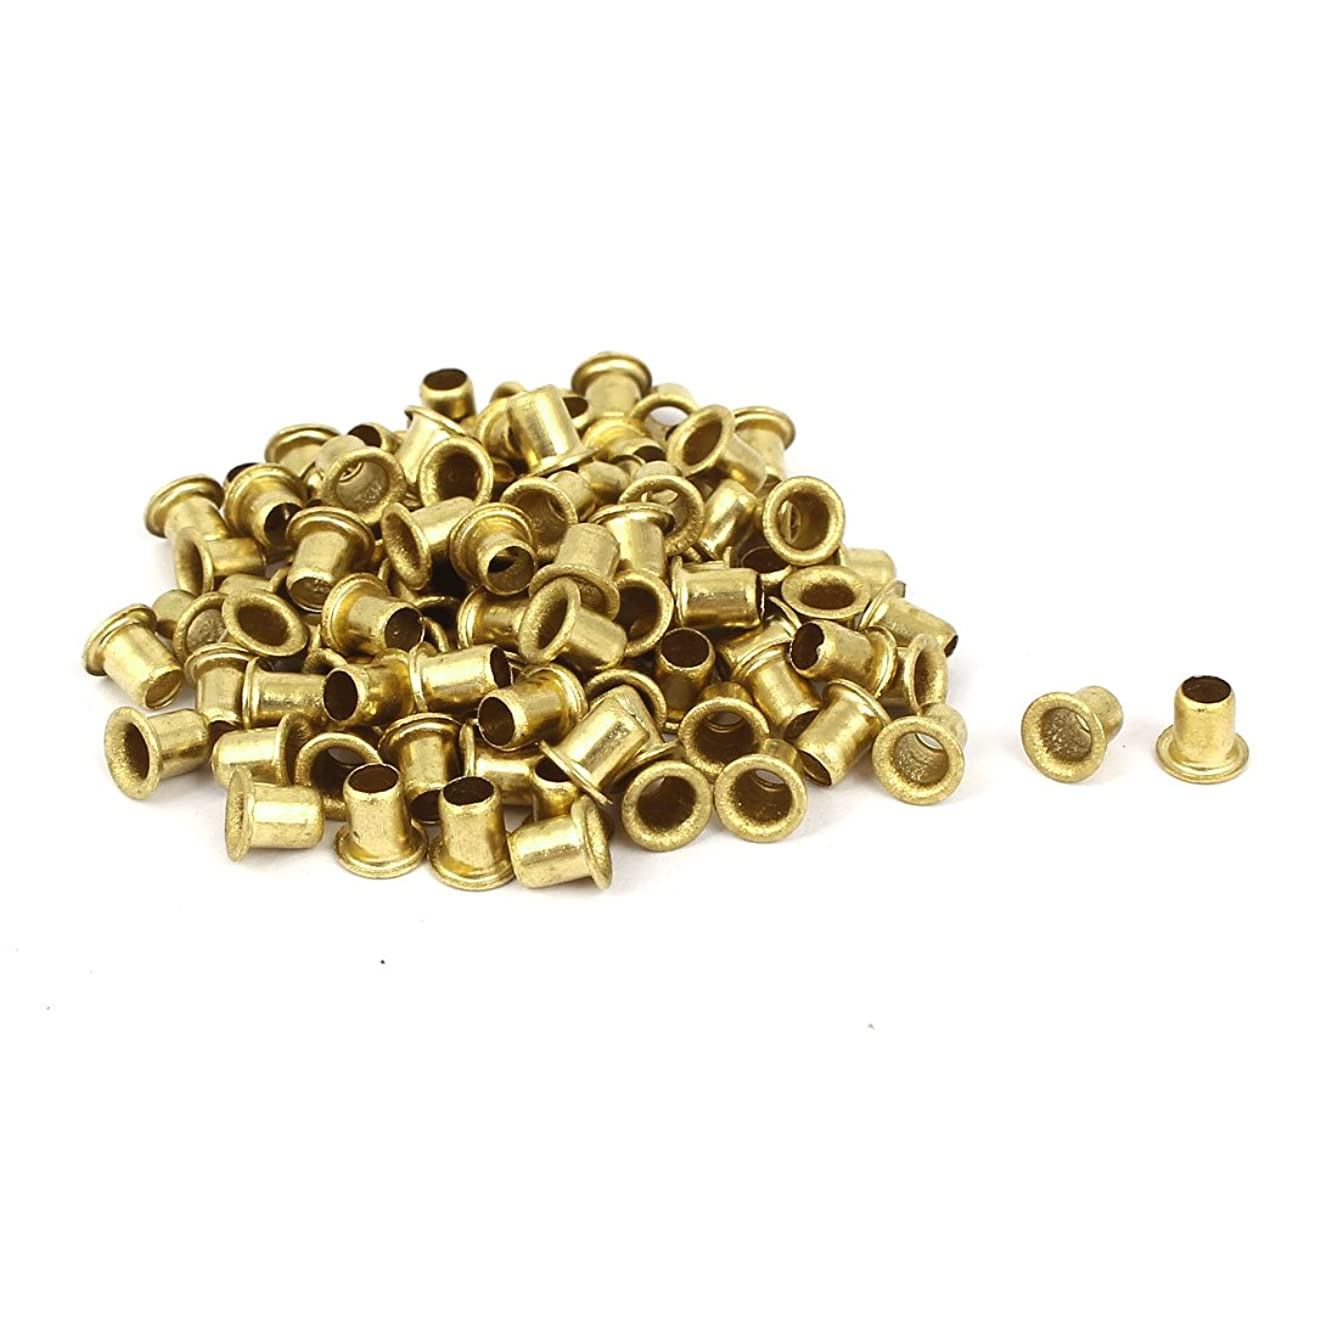 Uxcell a16032800ux0871 4mm x 5mm Double Sided Hollow Rivets Grommets Tool 100 Pcs